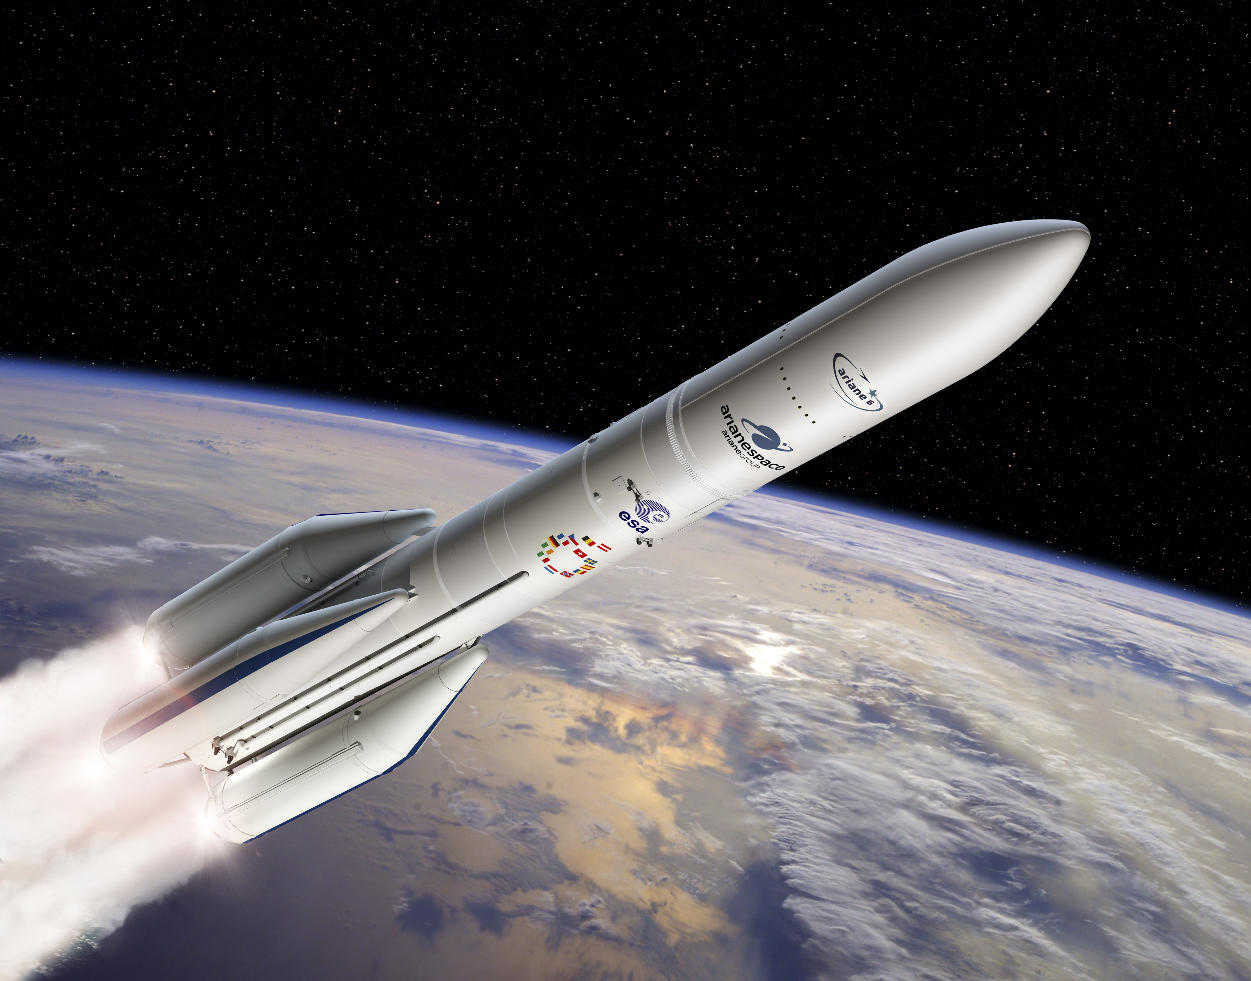 ArianeGroup, CNES launch ArianeWorks acceleration platform